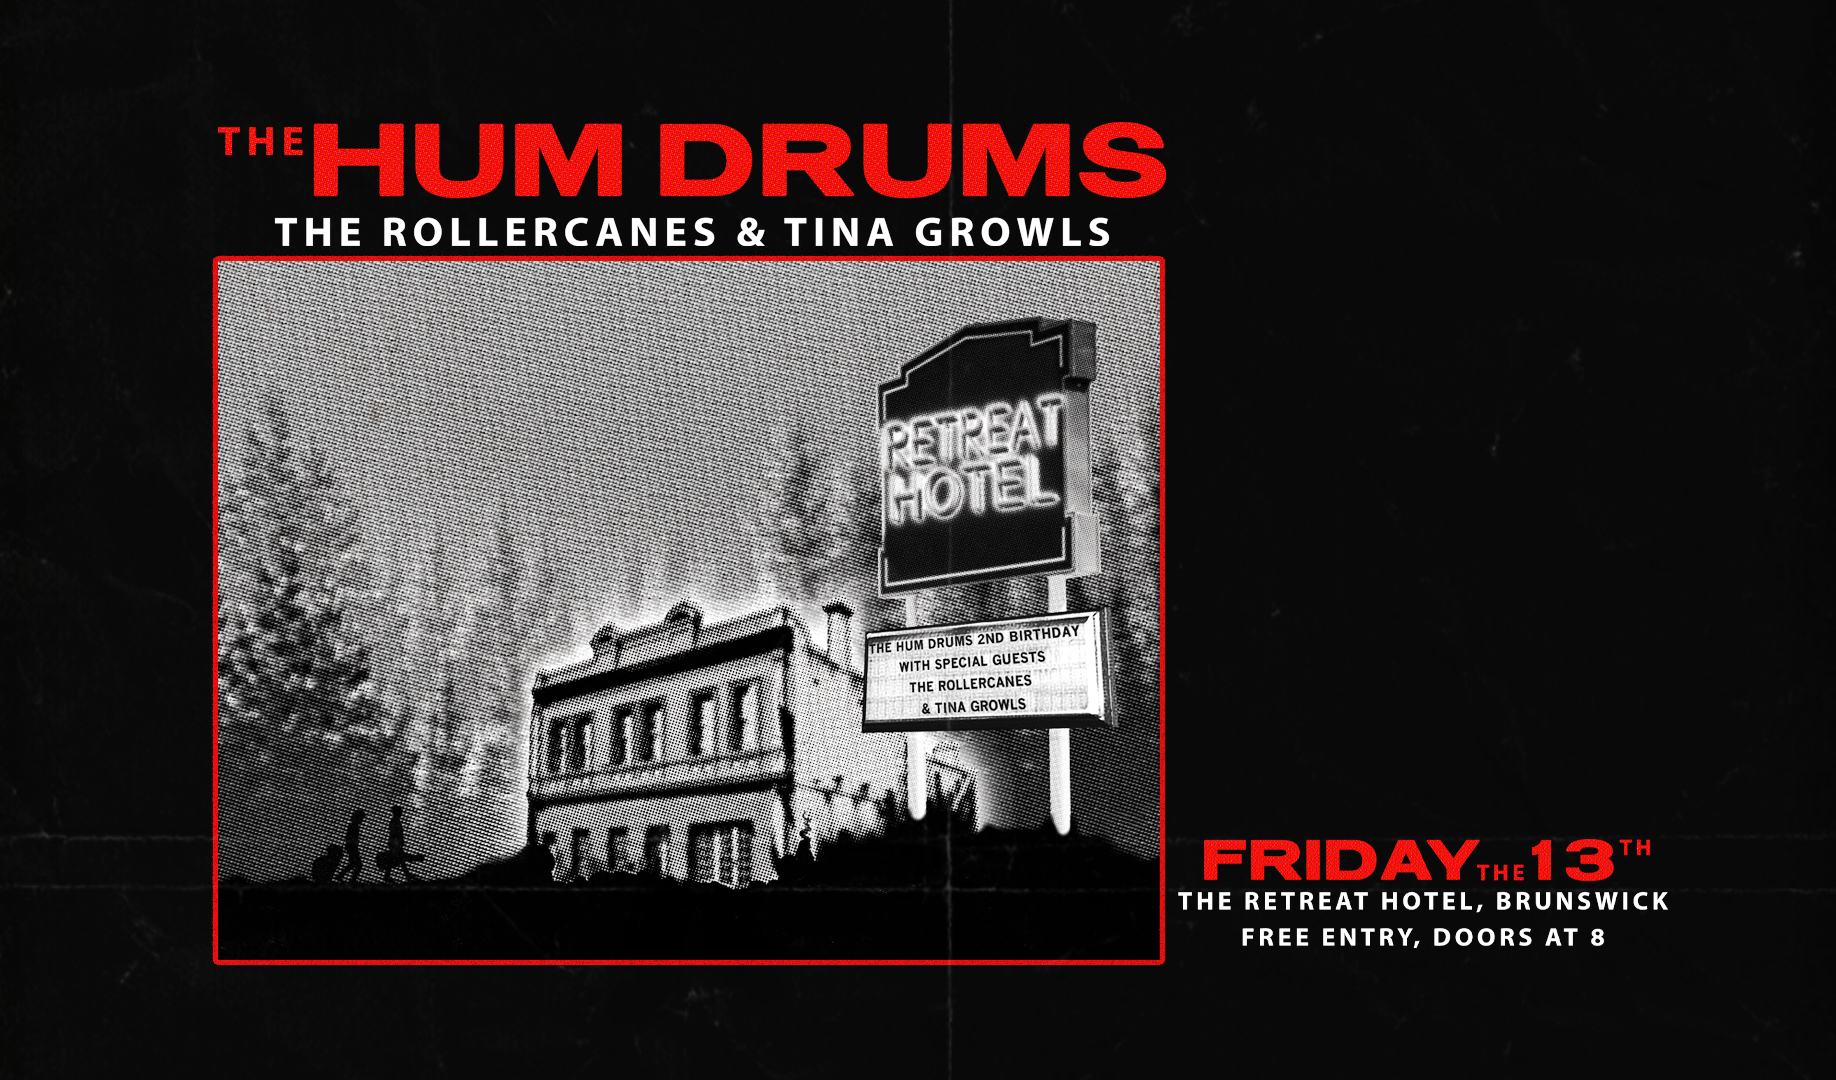 The Hum Drums